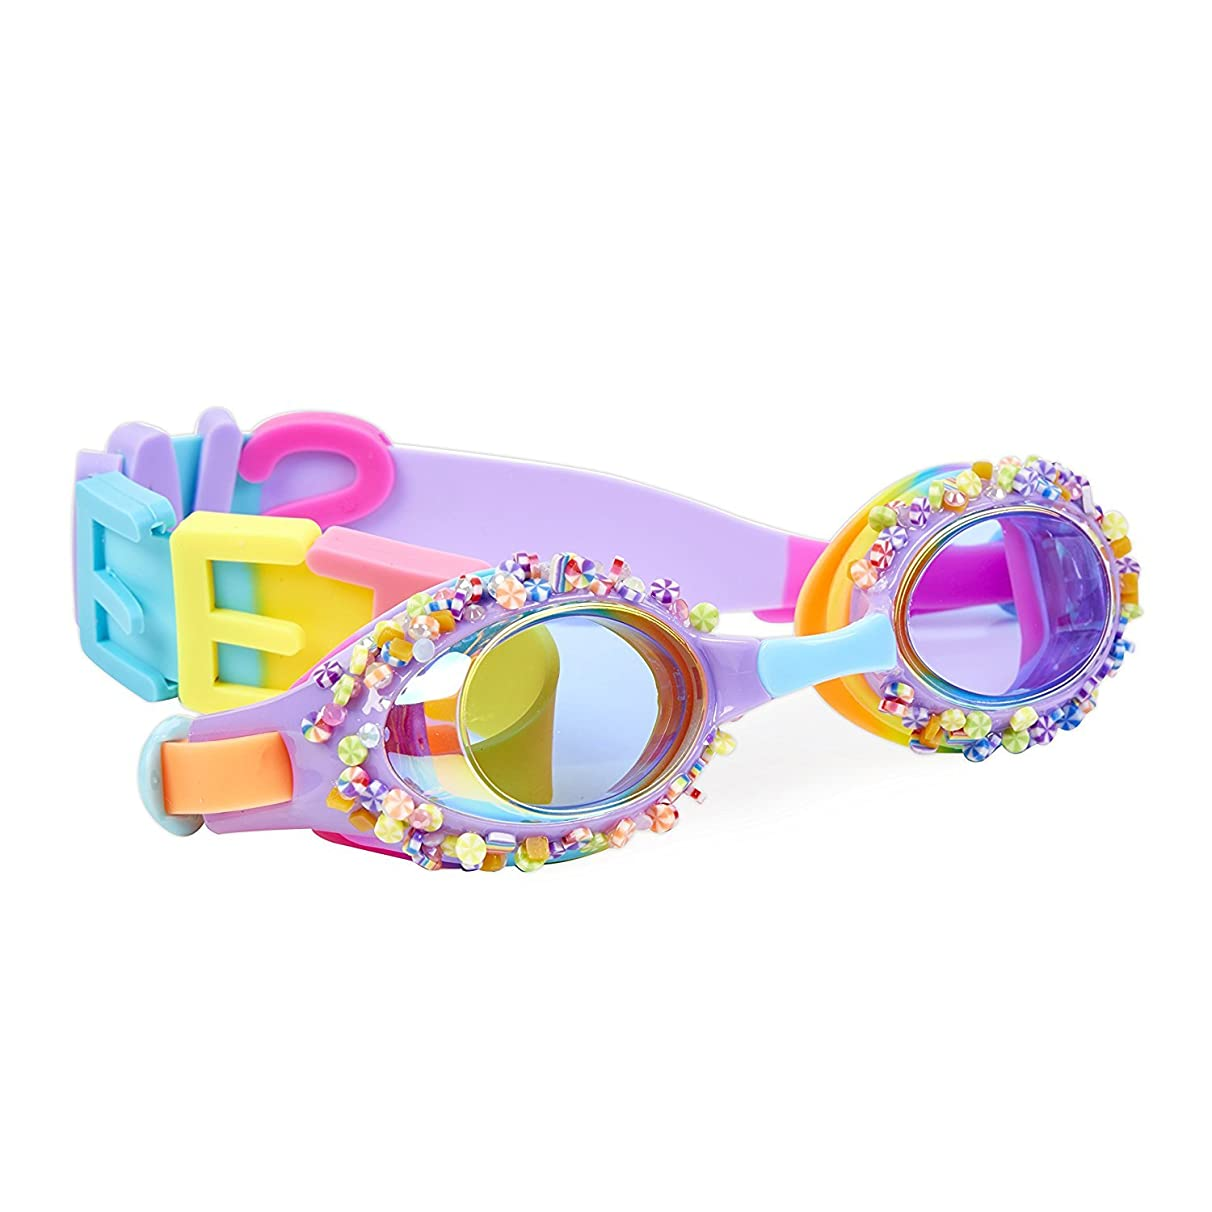 "Bling2o Goggles Kids Swim Goggles - ""Penny Candy"" Kids Swimming Goggles with Anti Fog UV Protection and Custom Kid Goggles Hard Case"